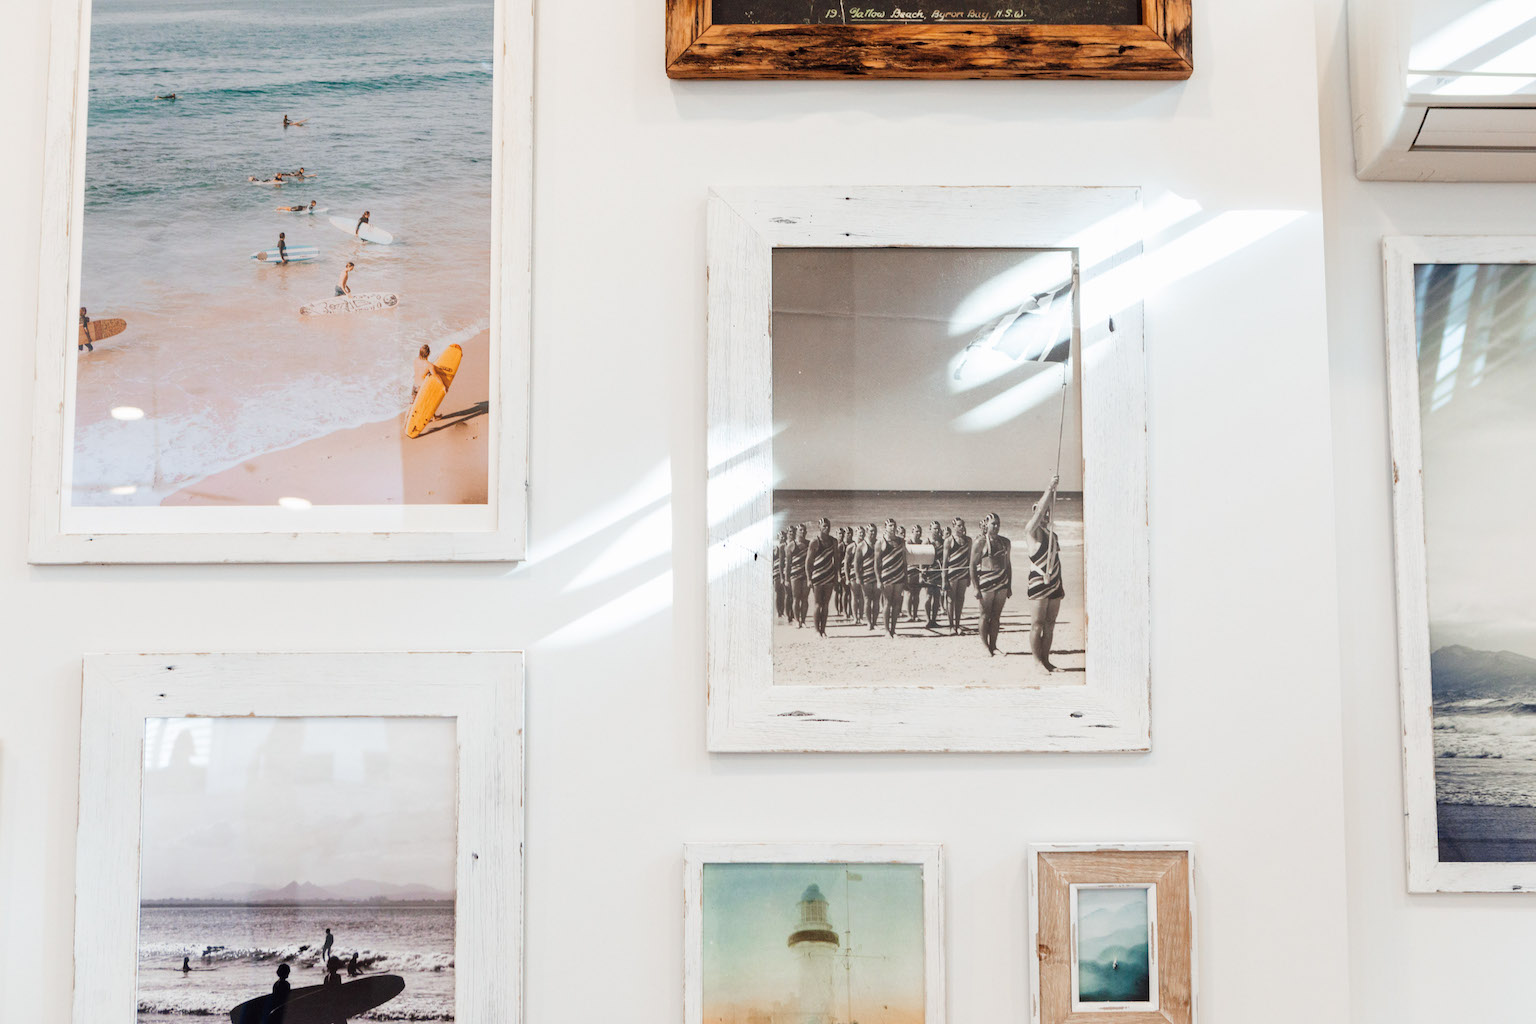 Surf images at The Surf House Byron Bay. Credit Amy Whitfield